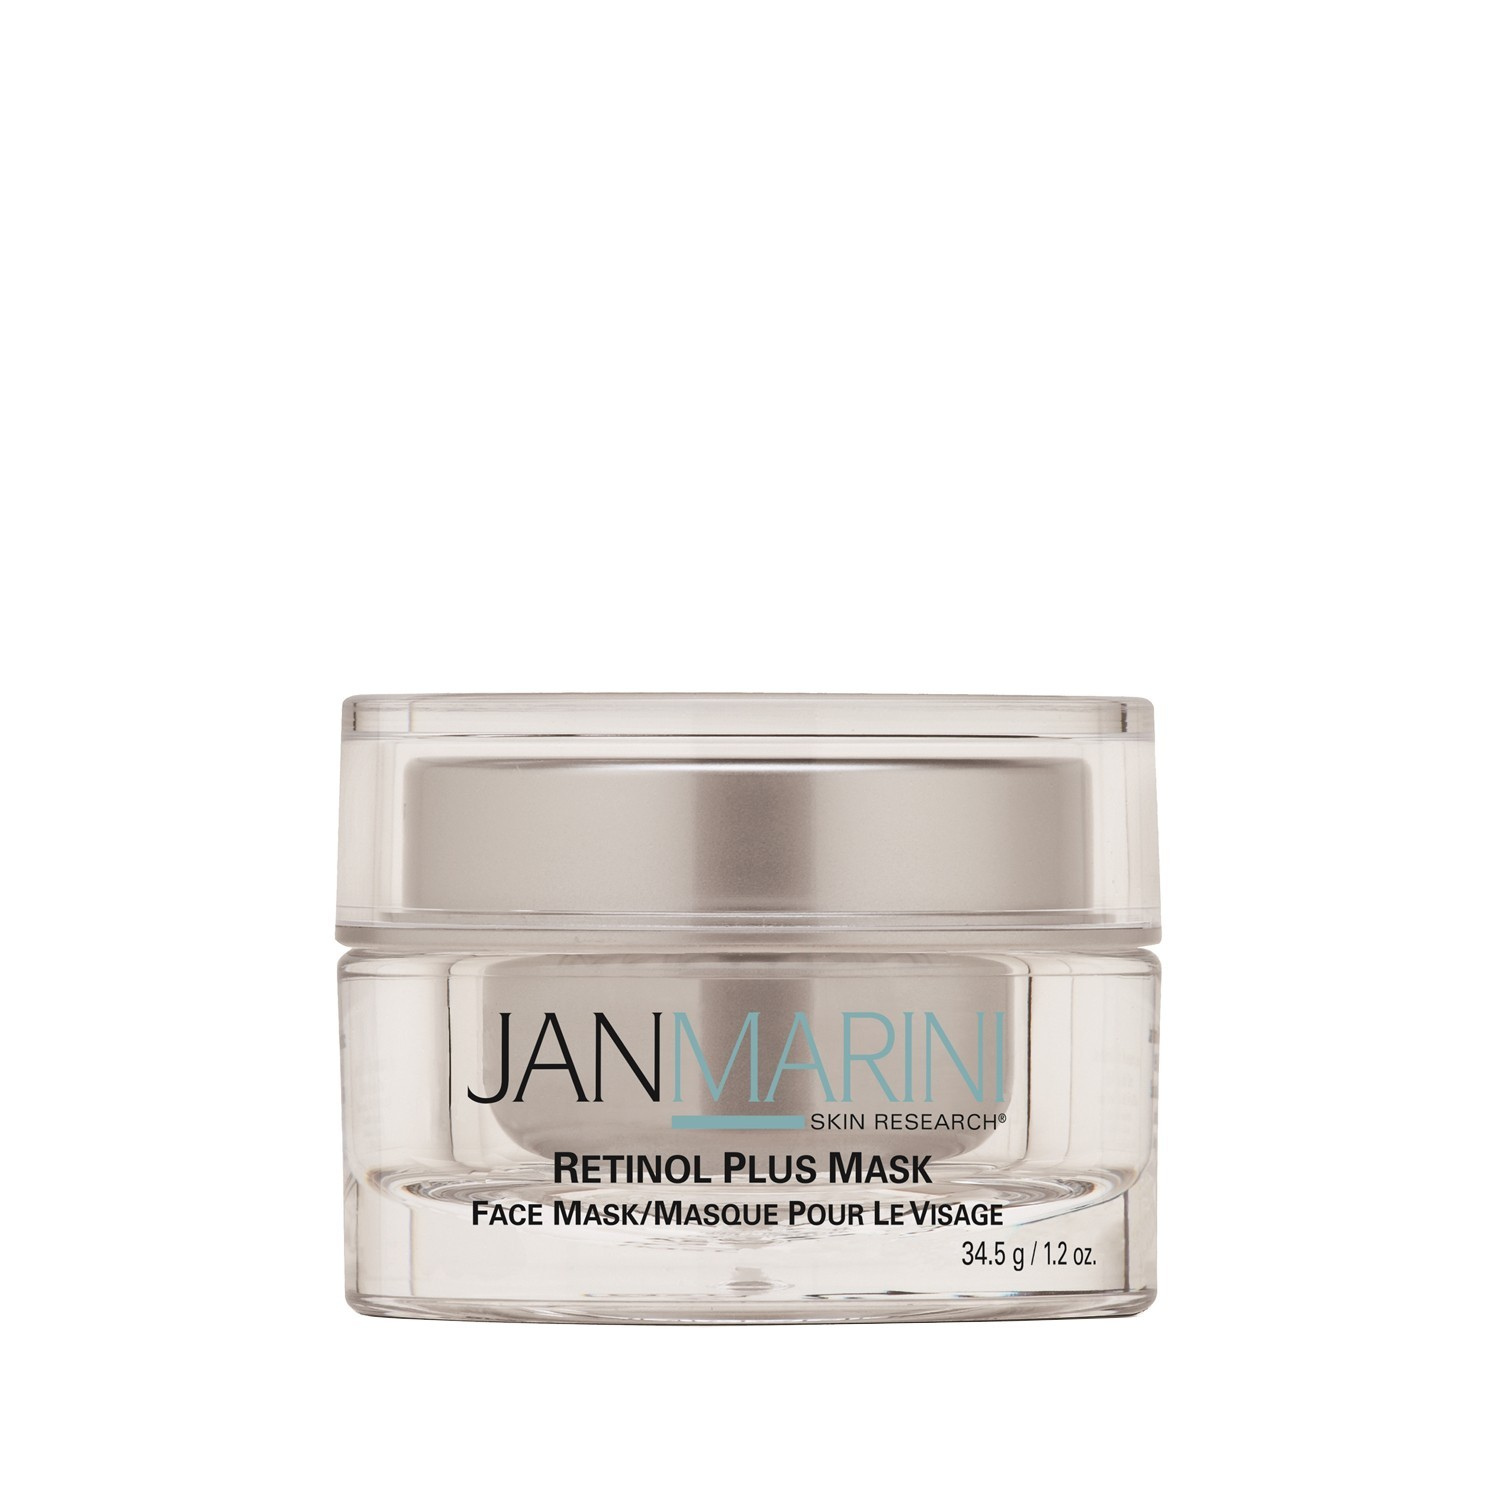 Retinol Plus Mask - JANMARINI